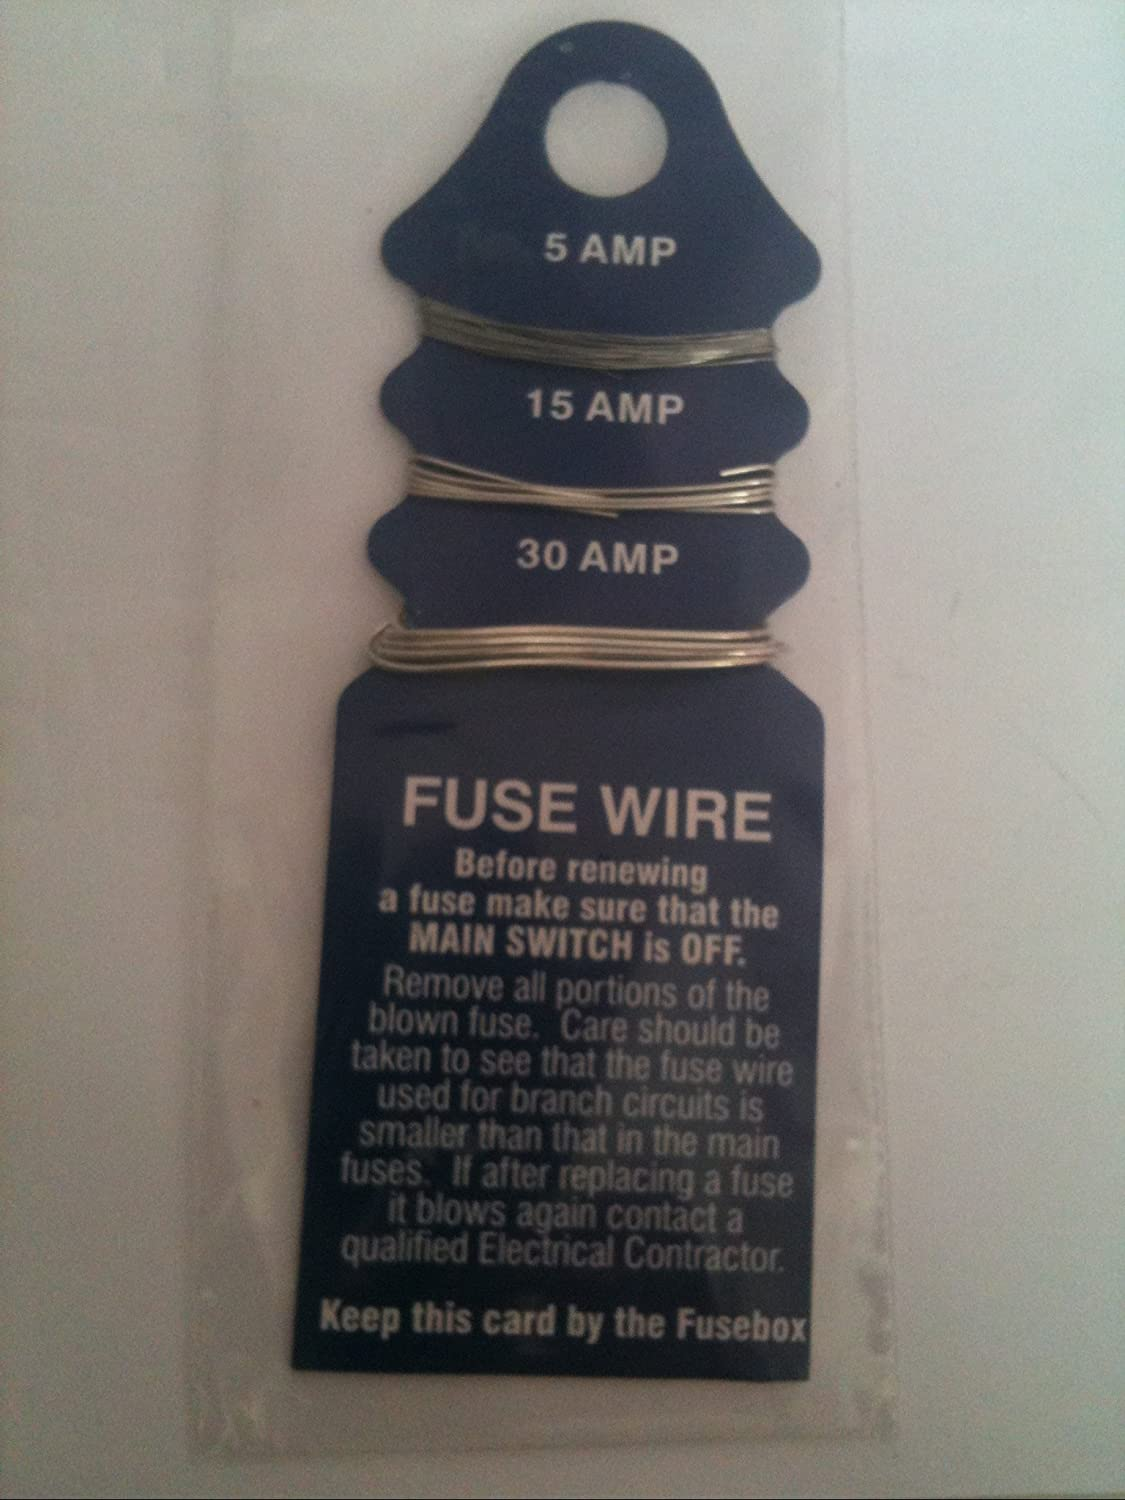 Fuse Wire 5 amp 15 Amp 30 Amp A Amp Fuse Box Wire on